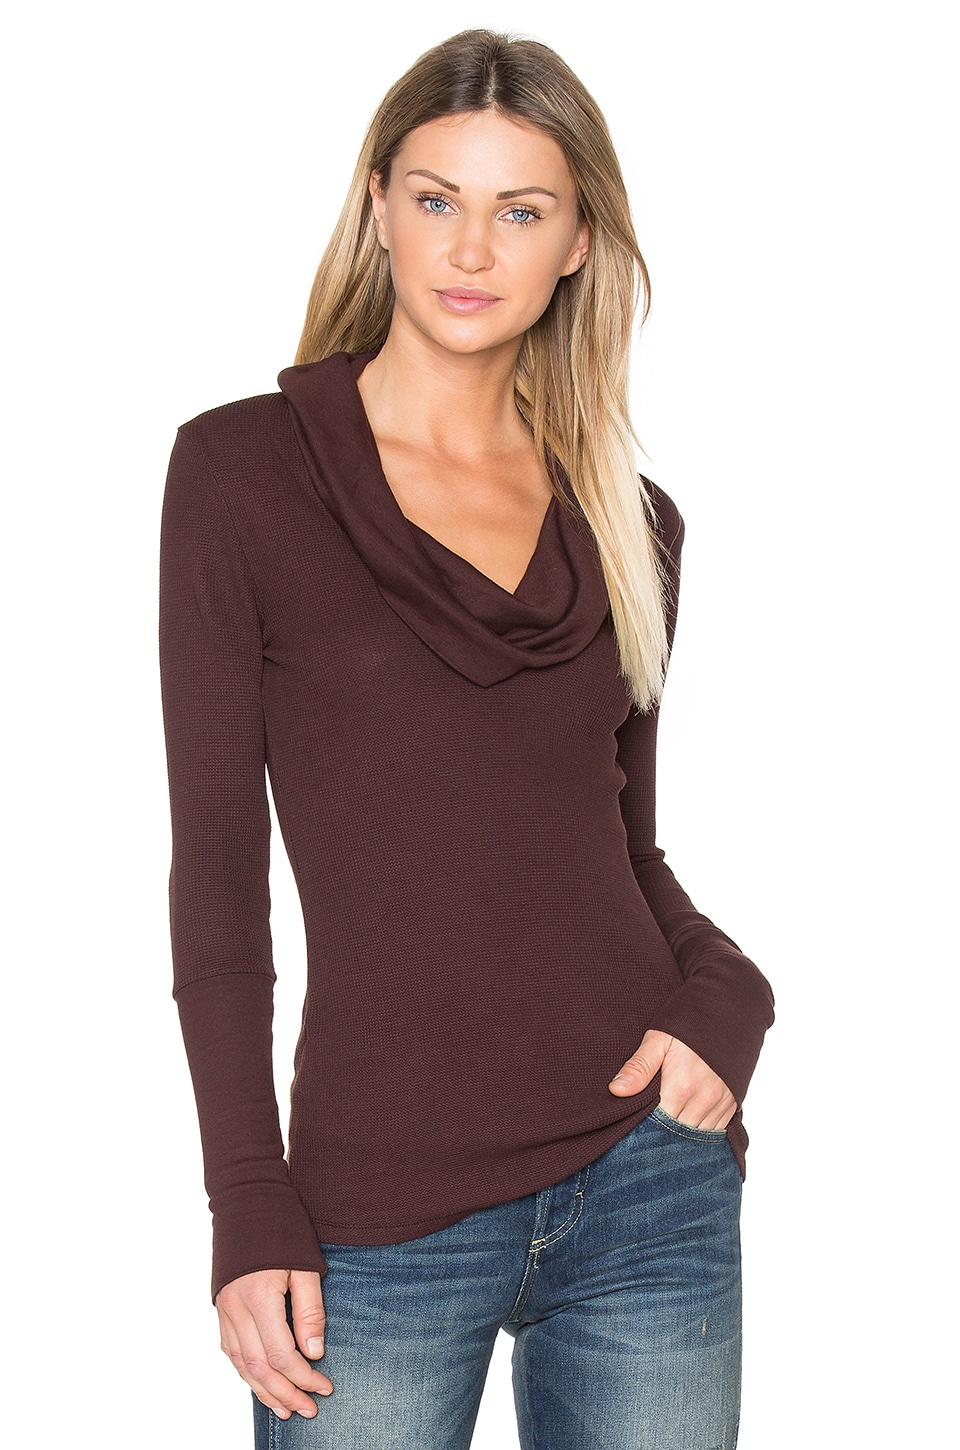 Modal Thermal Cowl Neck Long Sleeve Top by Bobi